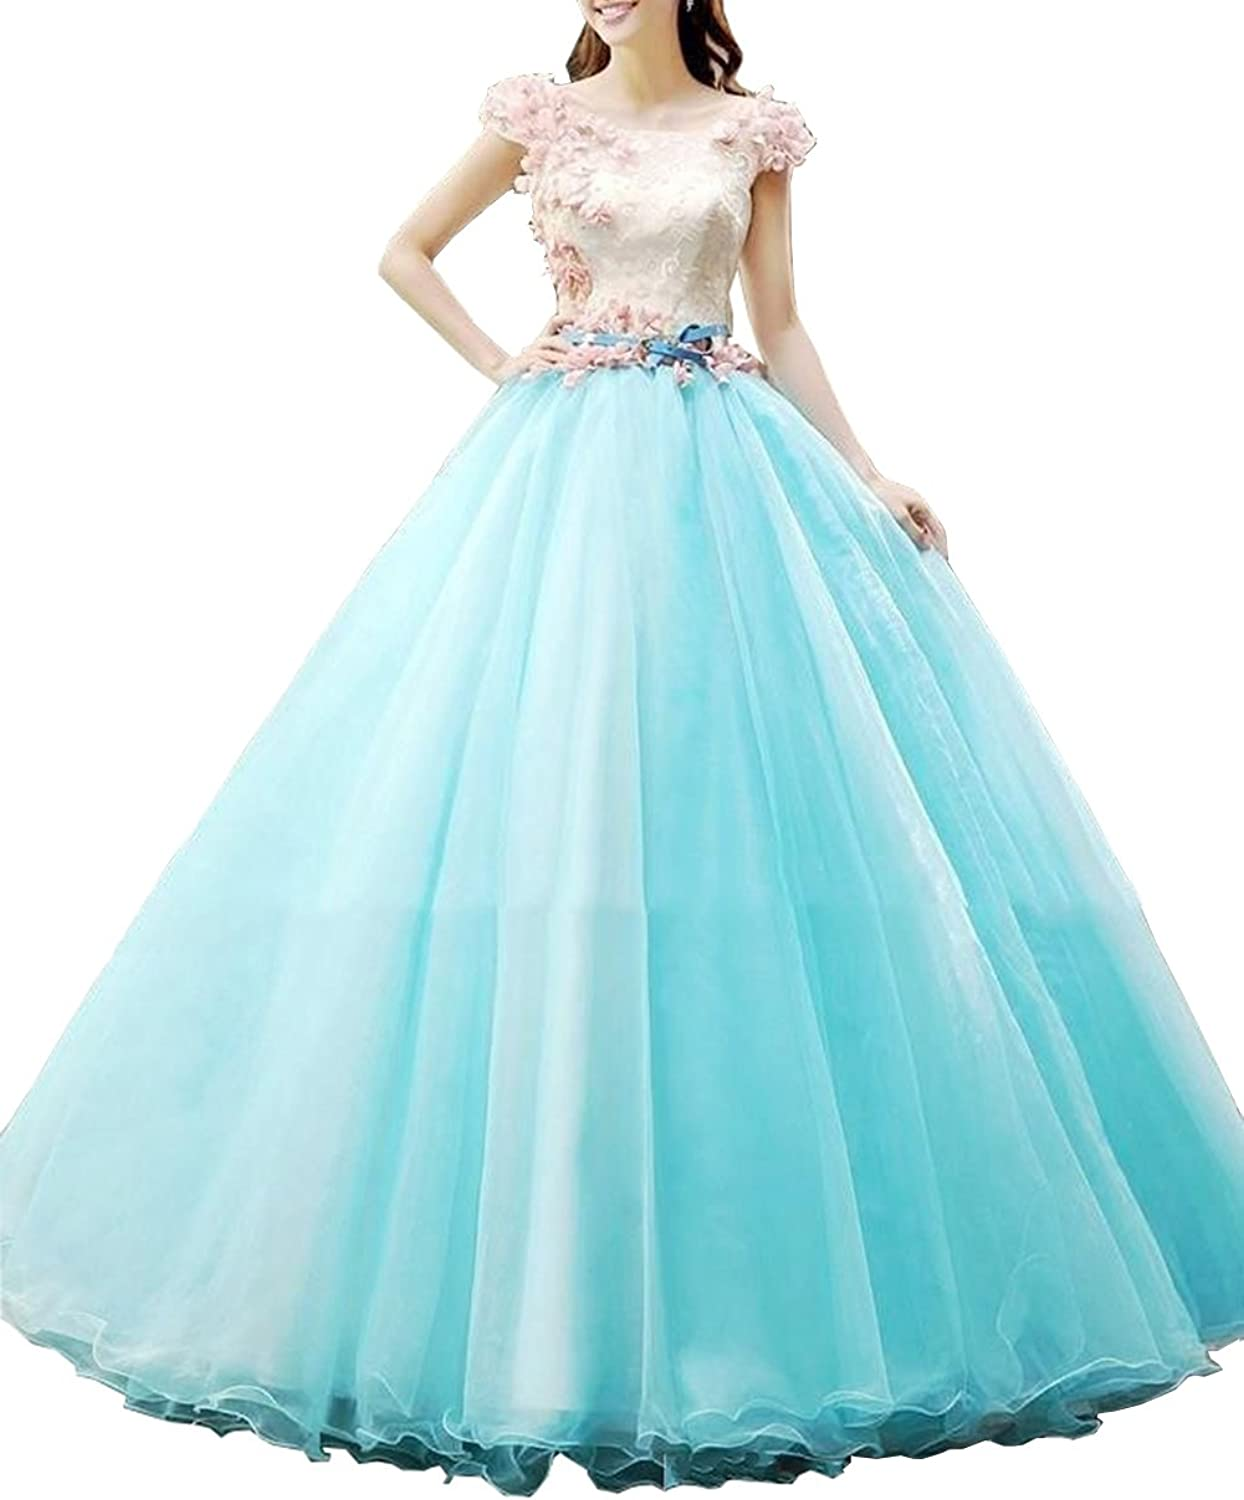 Datangep Women's Cap Sleeve with Flower Zipper Back Ball Tulle Quinceanera Dress